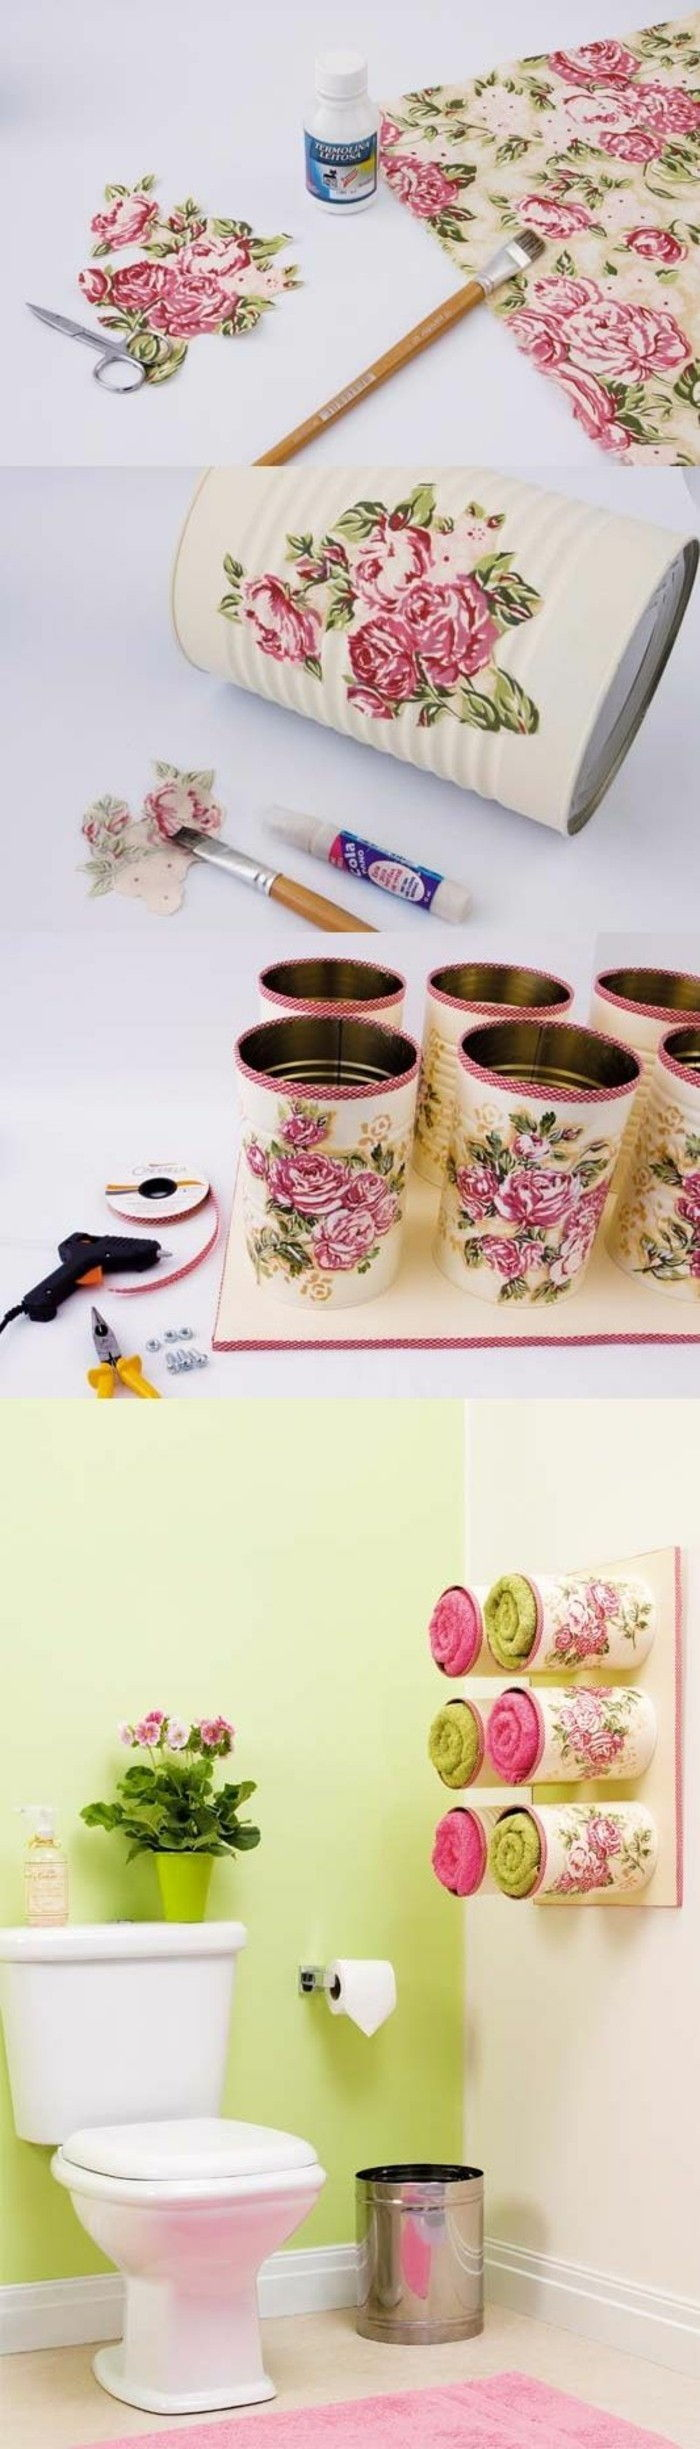 tinker-with-tin cans-big-boxes-paper-with-flowers-shelves-bathroom trash can